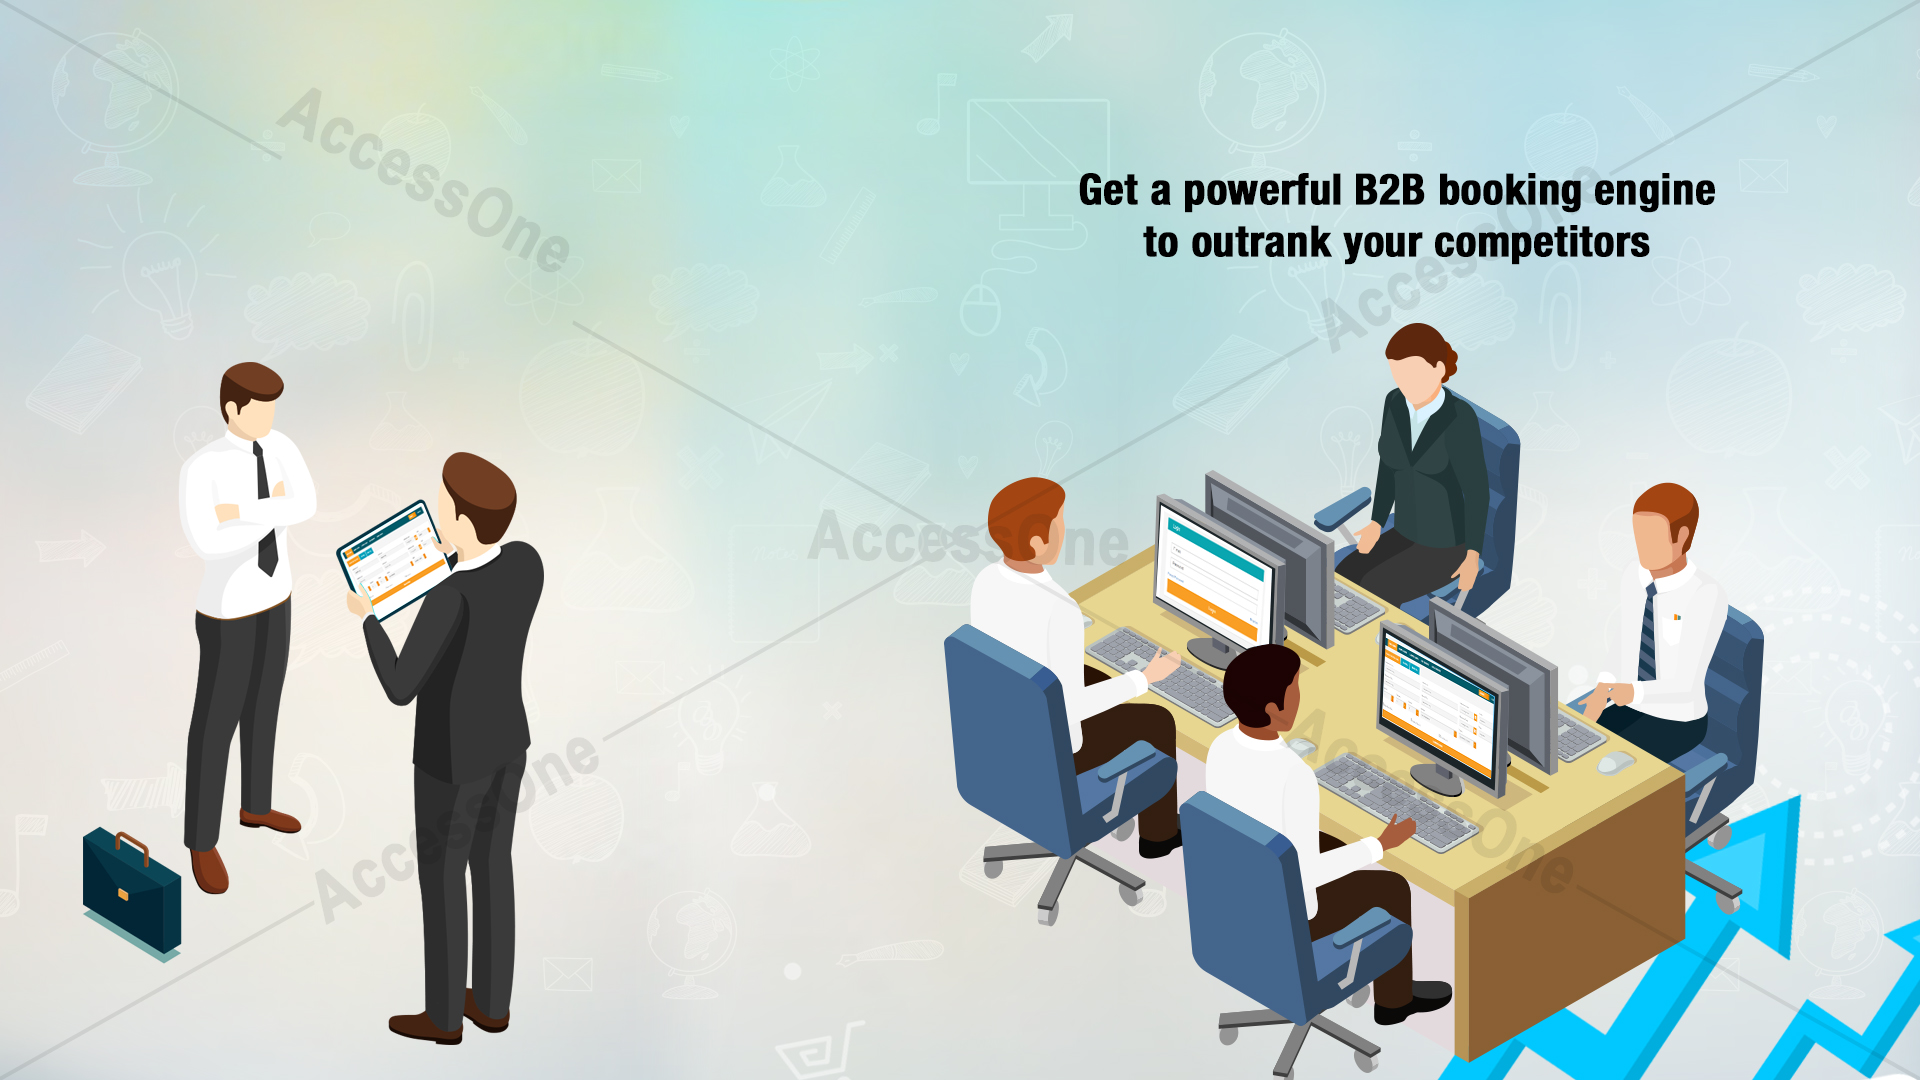 Get a powerful B2B booking engine to outrank your competitors